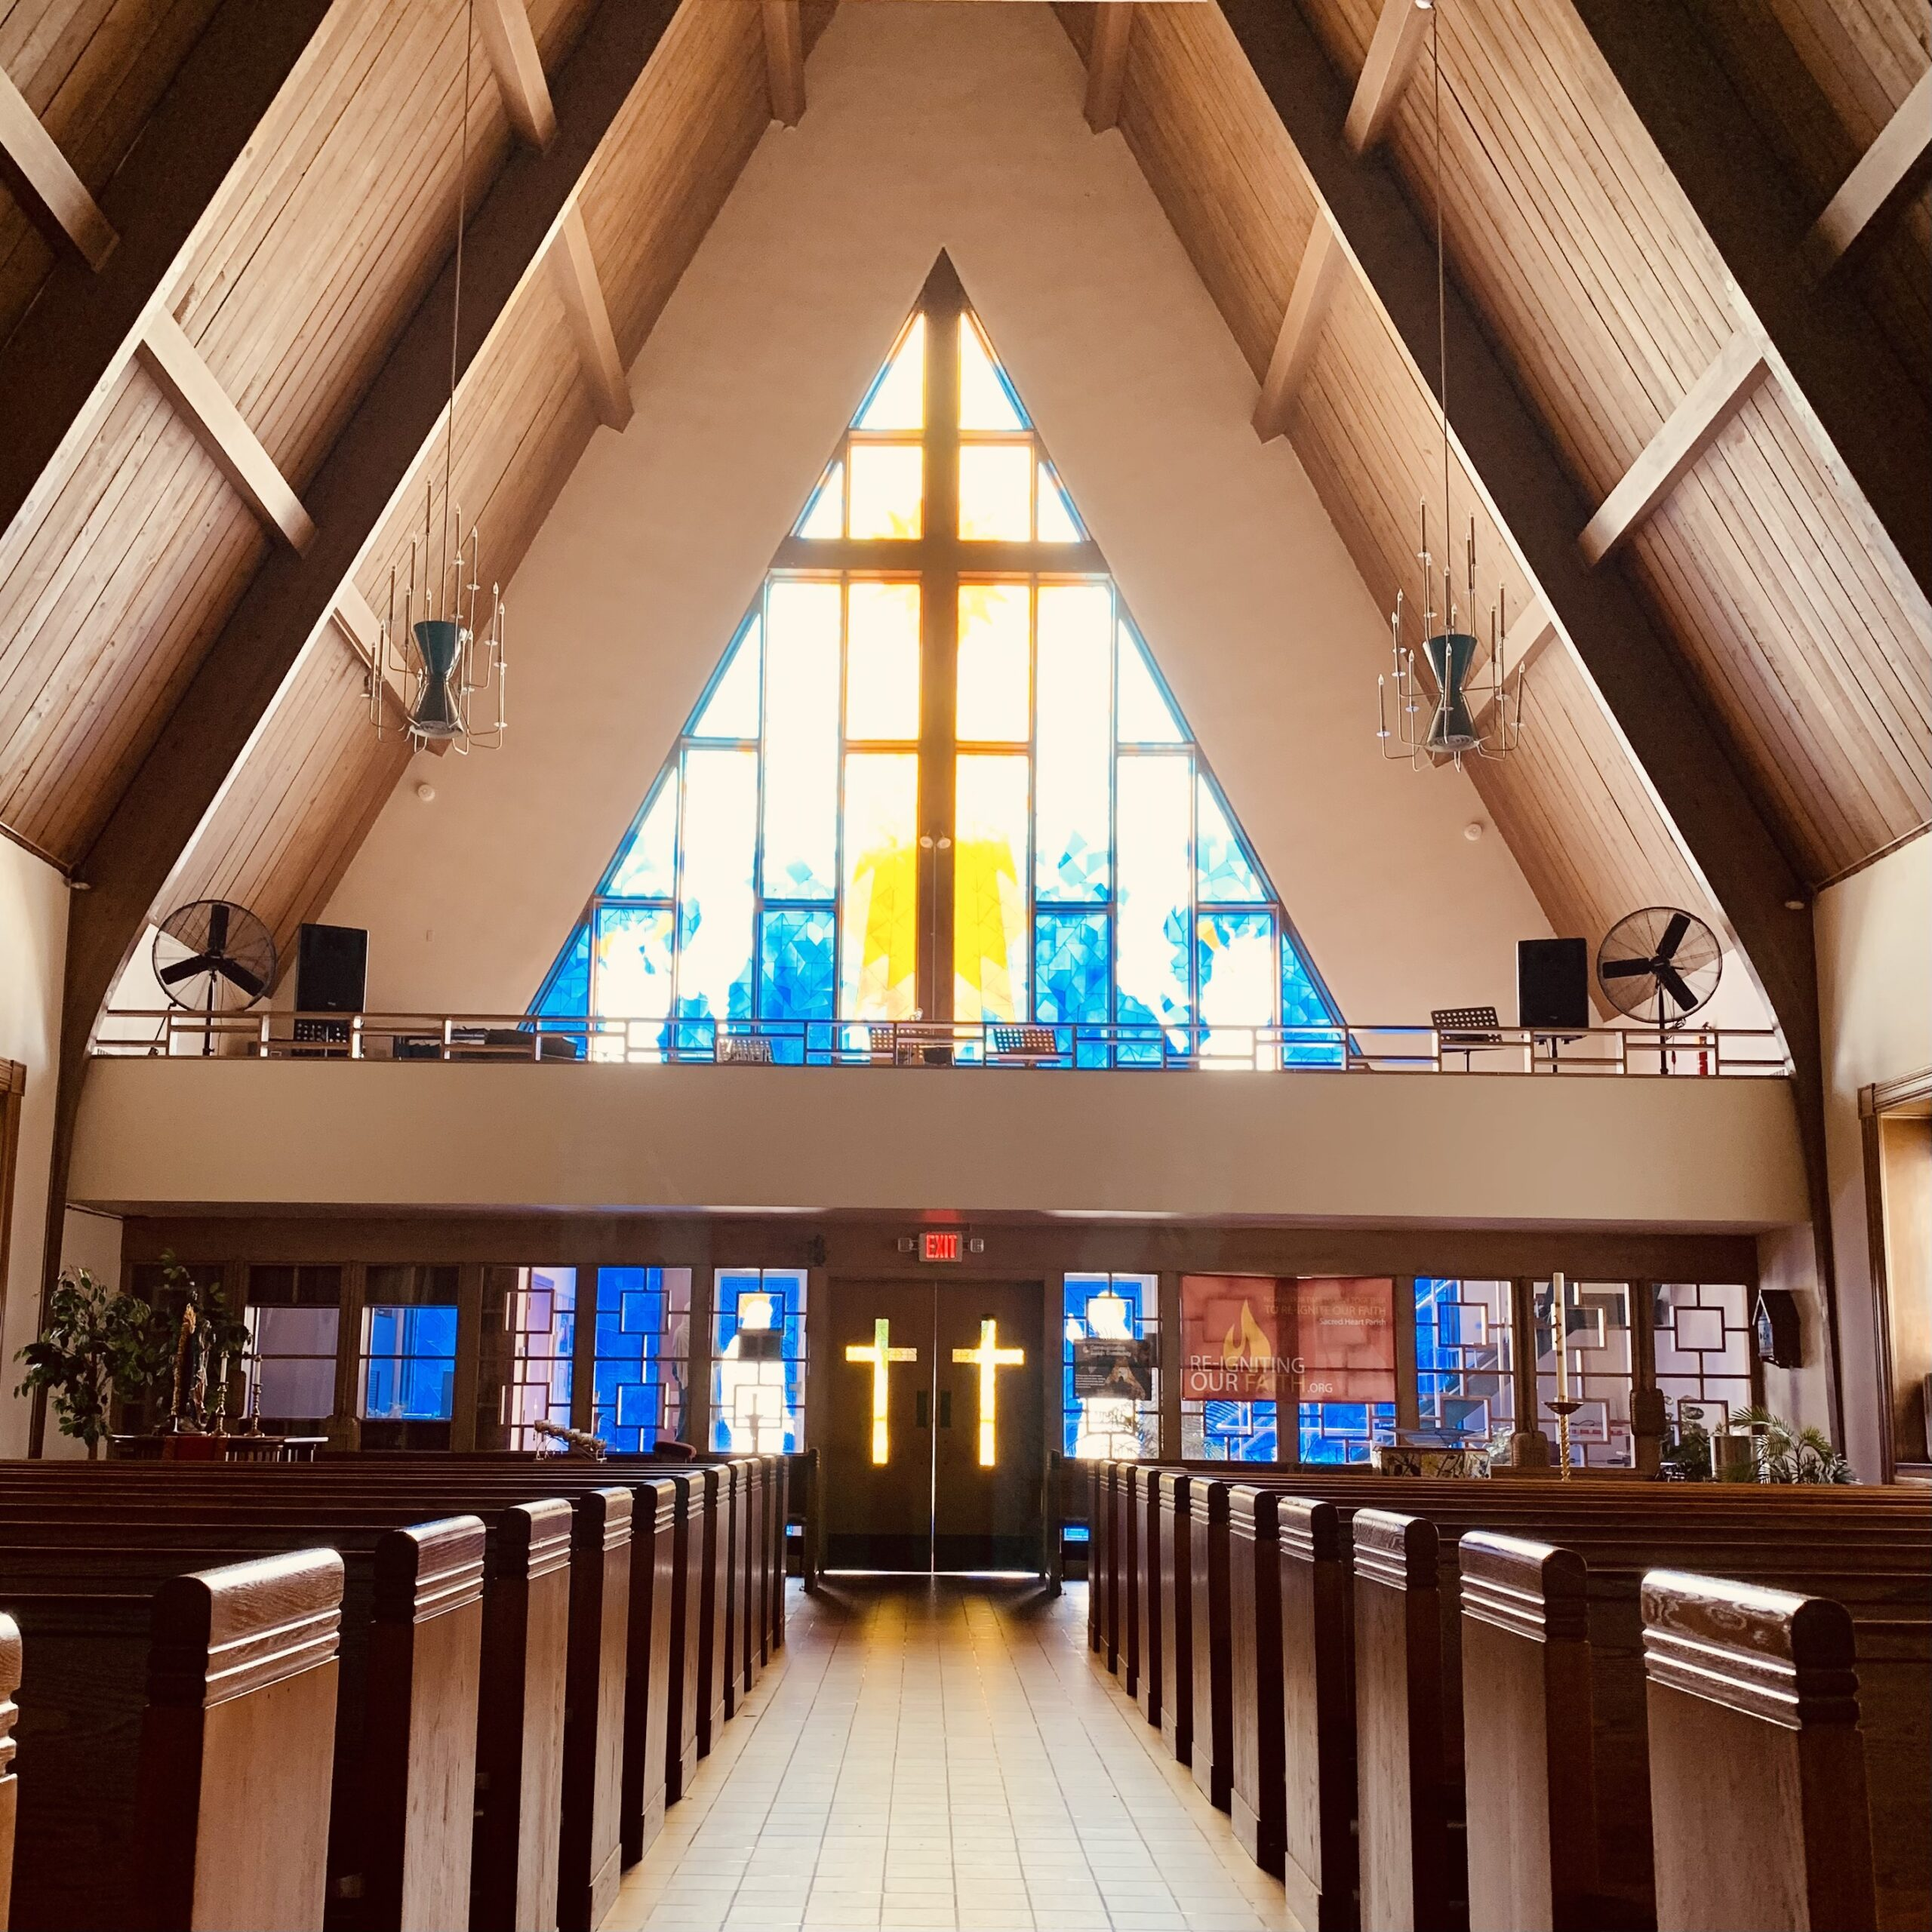 interior view of sacred heart church